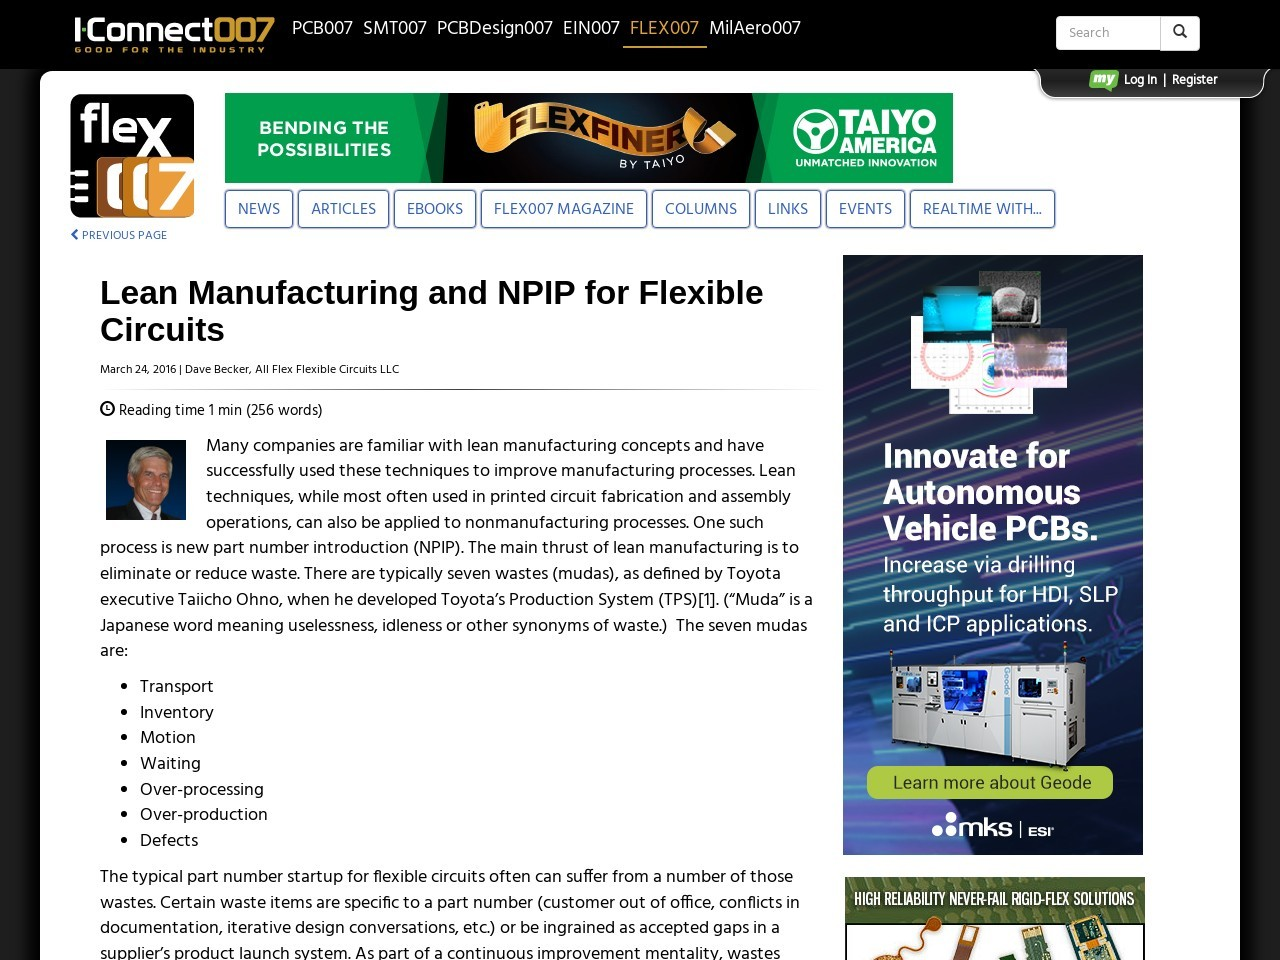 Lean Manufacturing and NPIP for Flexible Circuits